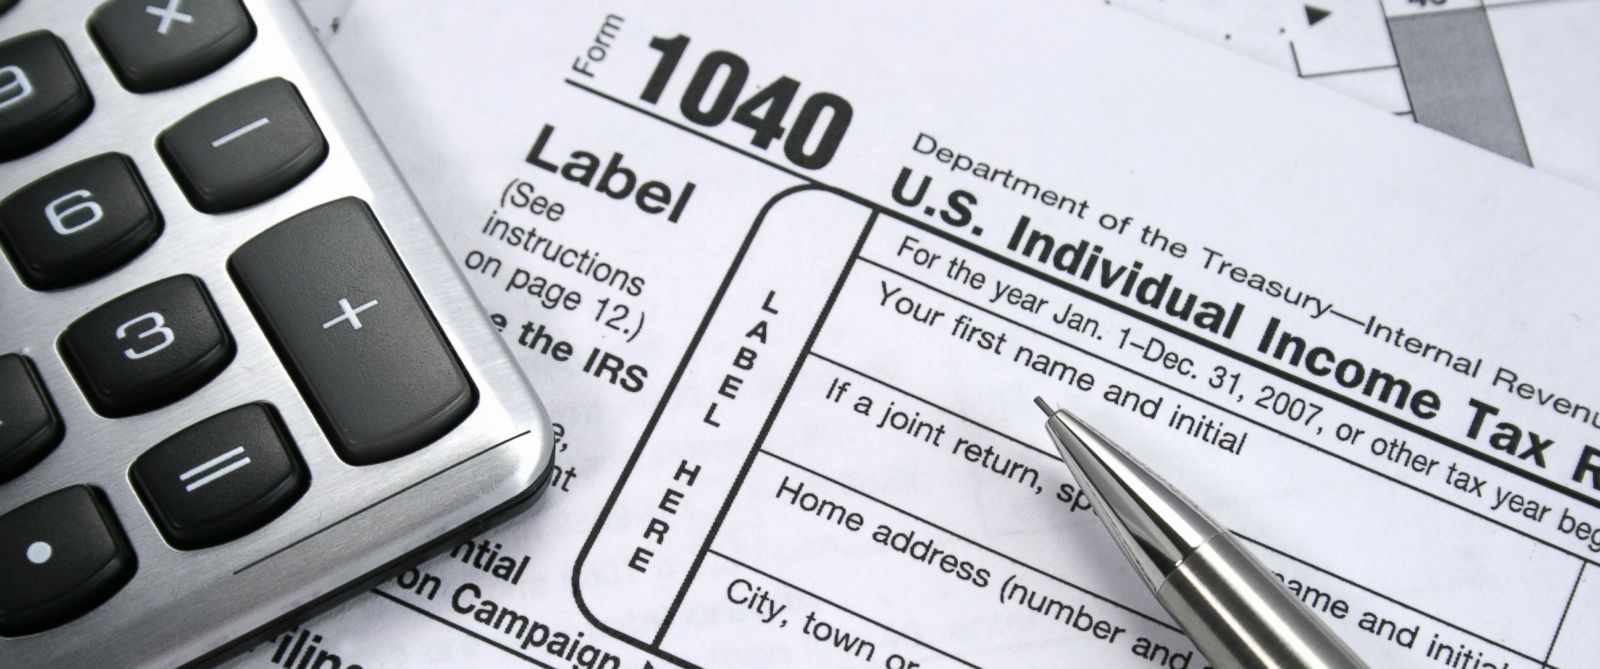 PHOTO: Here are some tips on how to spot a tax scam.